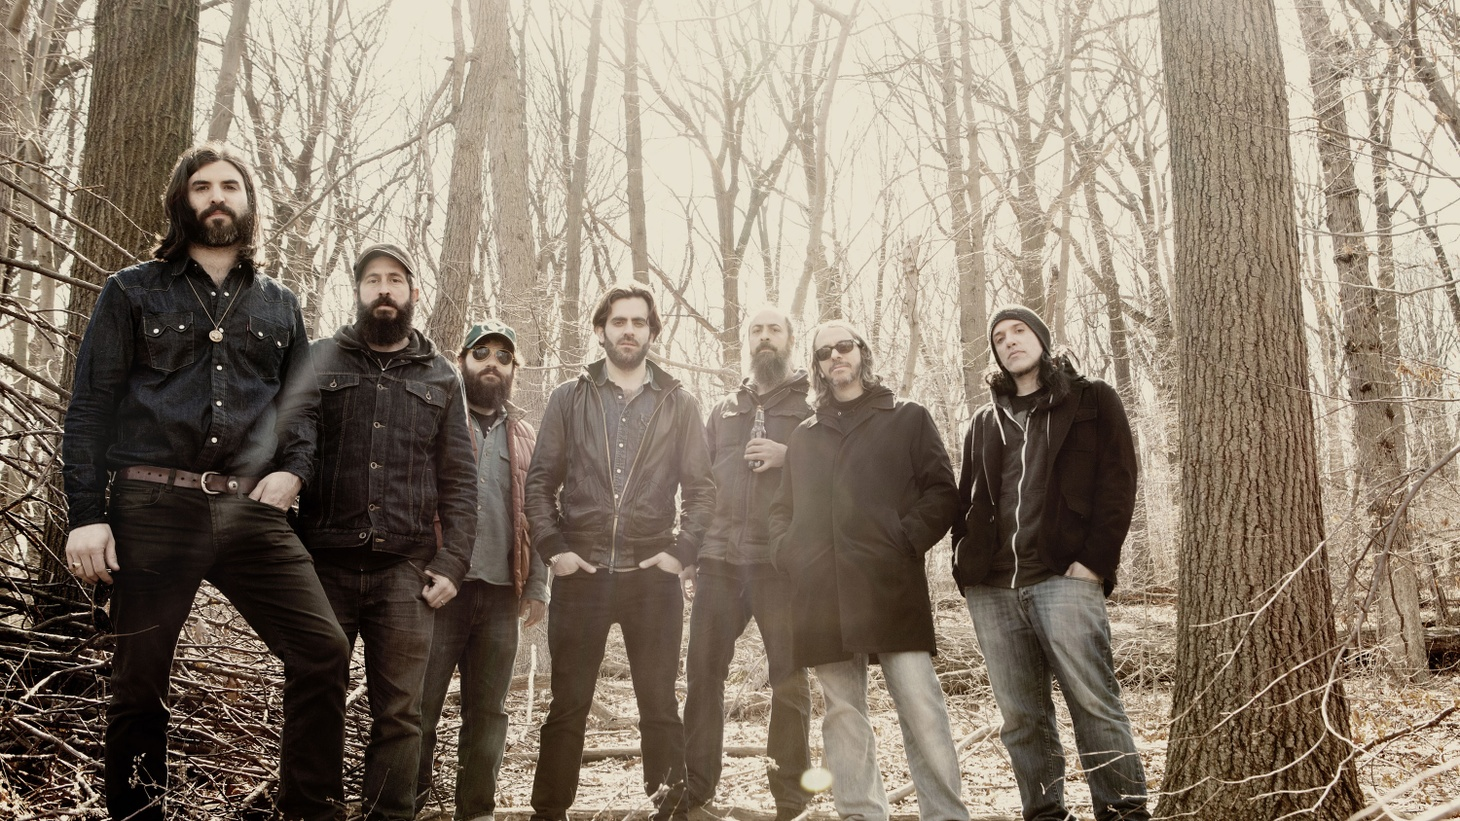 The Budos Band floored us with their Afro-soul flavored instrumentals on their recent visit to Morning Becomes Eclectic.